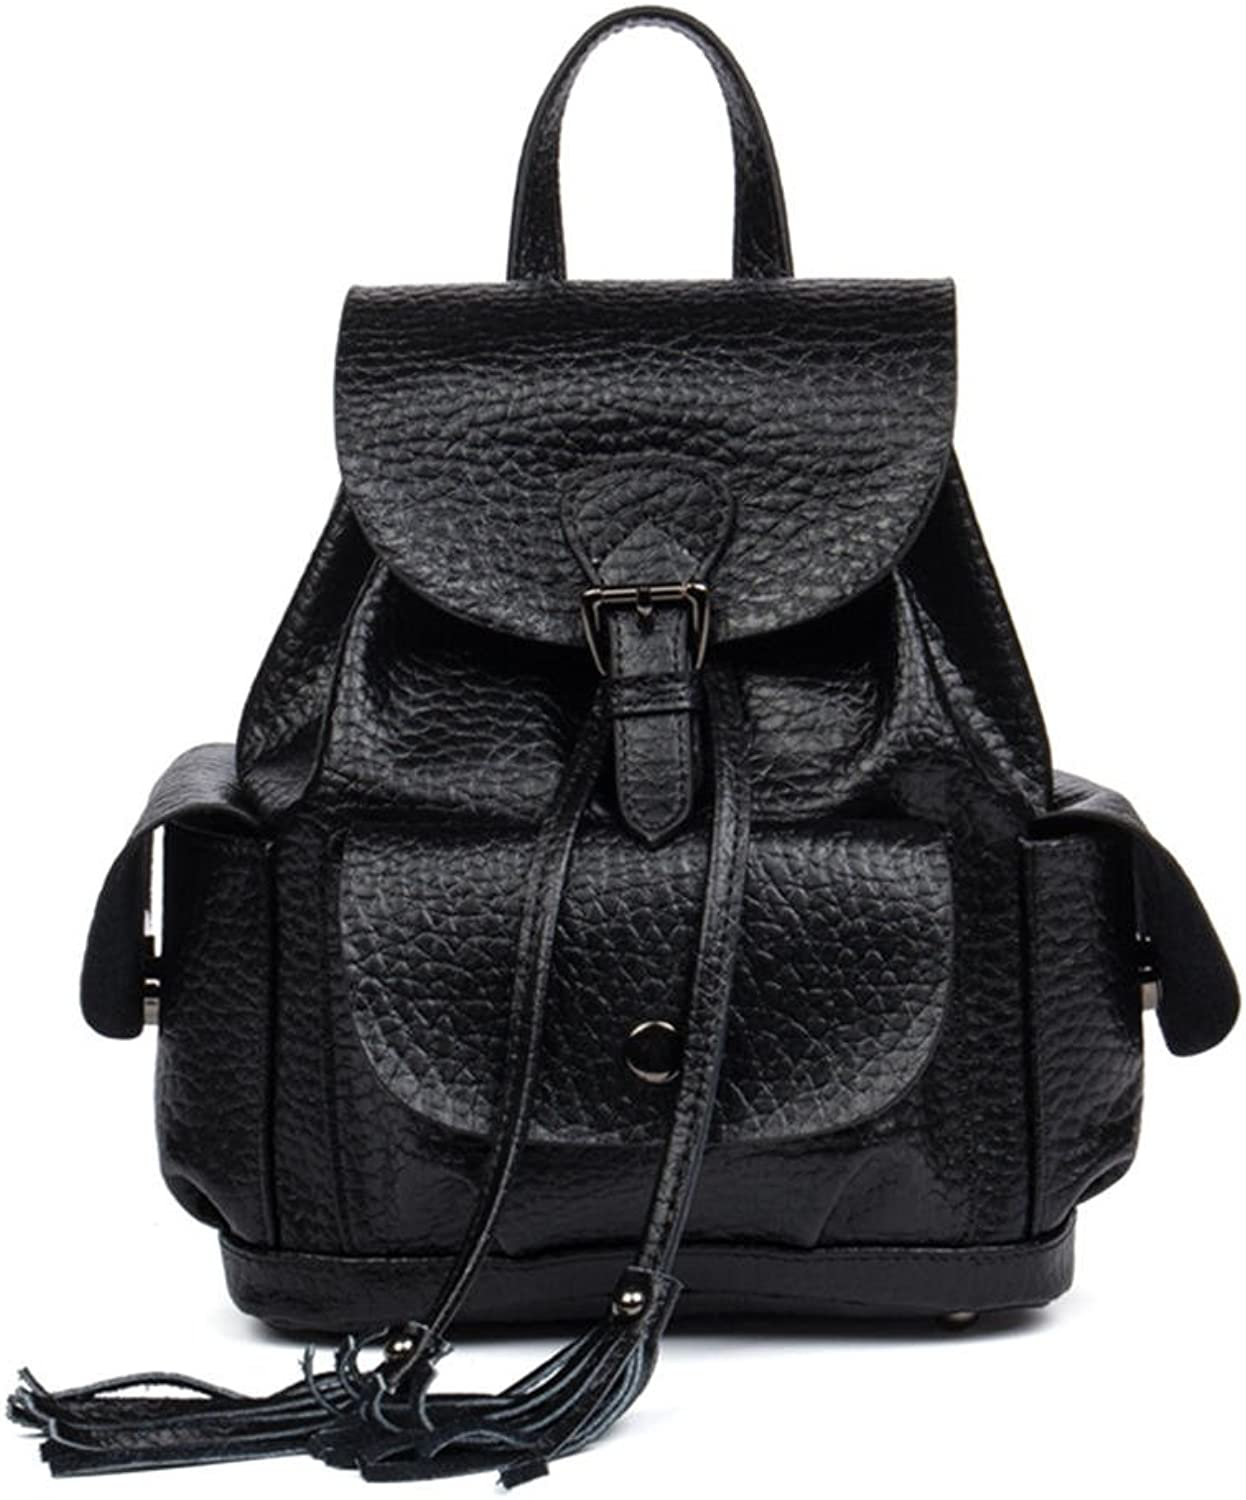 HMILY Leather Handbag Women's Backpack Fashion Casual Ladies Backpack H6896 Black